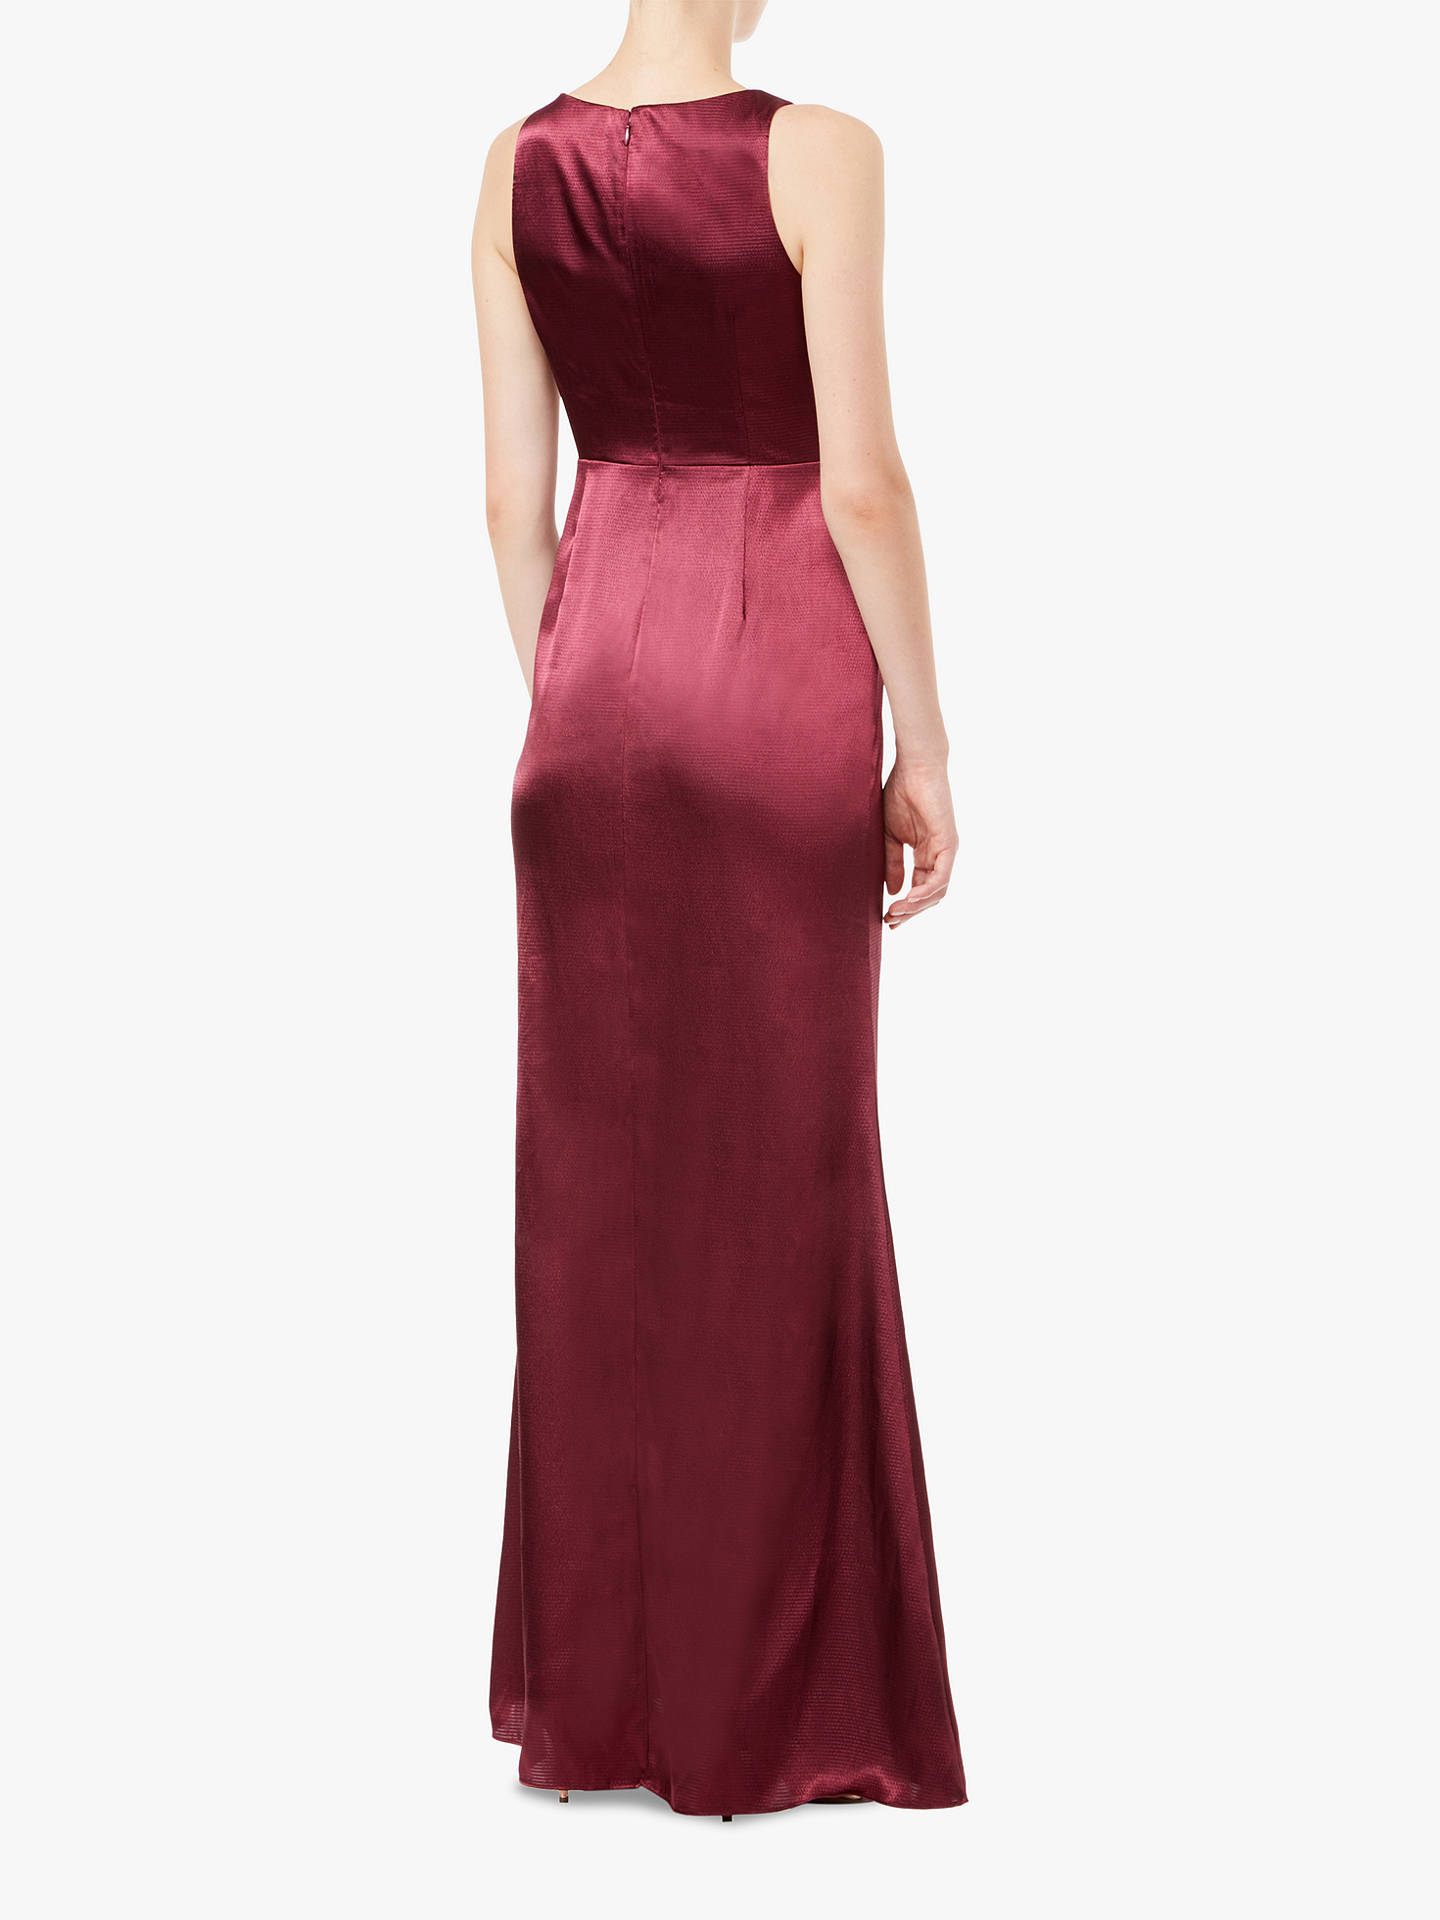 BuyAdrianna Papell Hammered Maxi Dress, Deep Wine, 6 Online at johnlewis.com